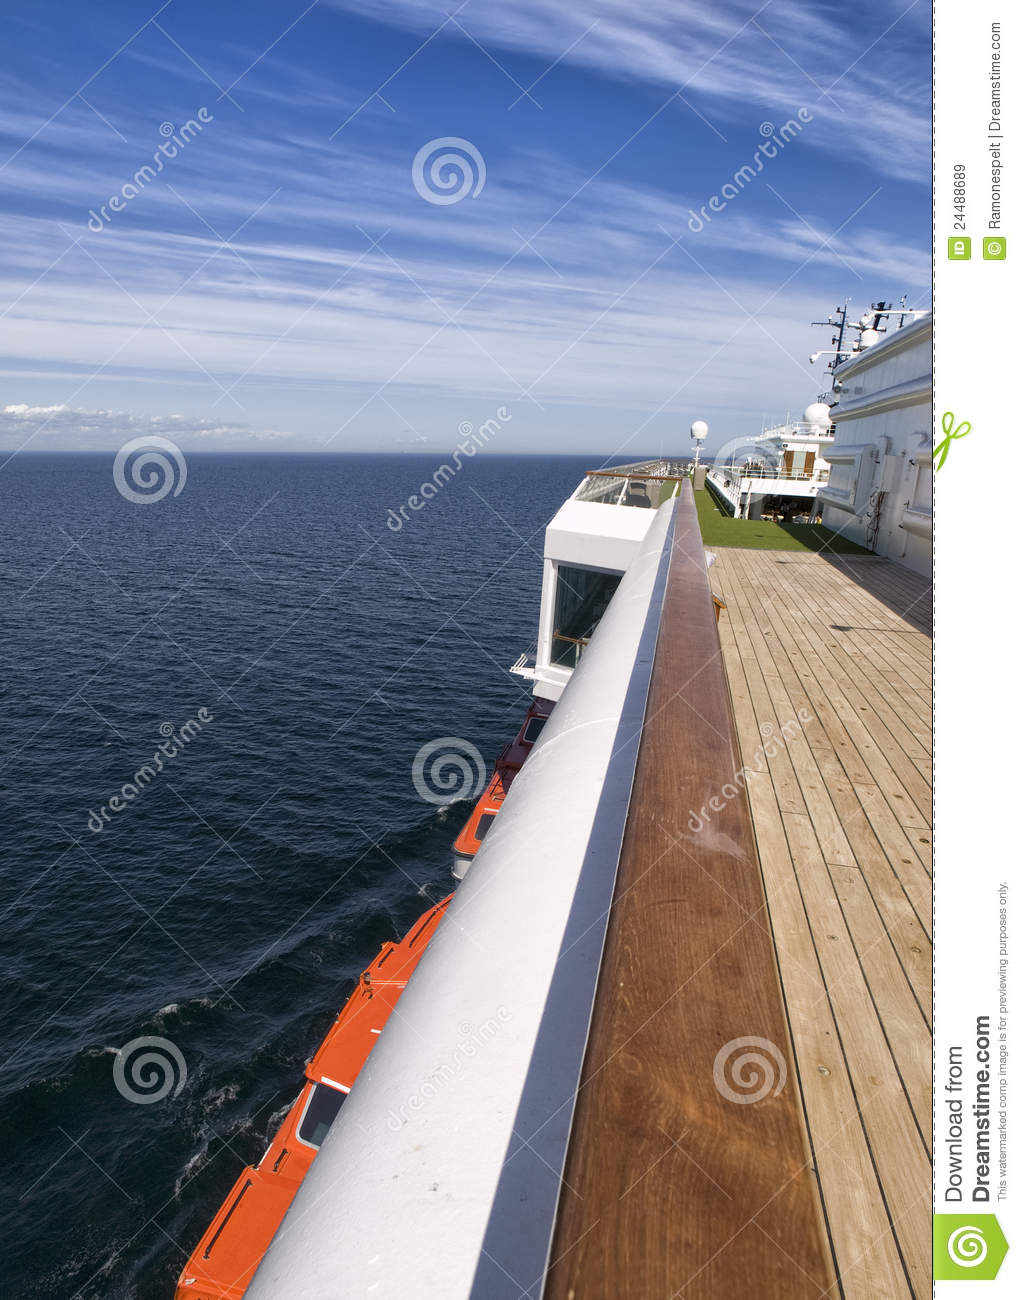 Download Deck Of A Cruise On A Sunny Day. Stock Image - Image of rest, good: 24488689